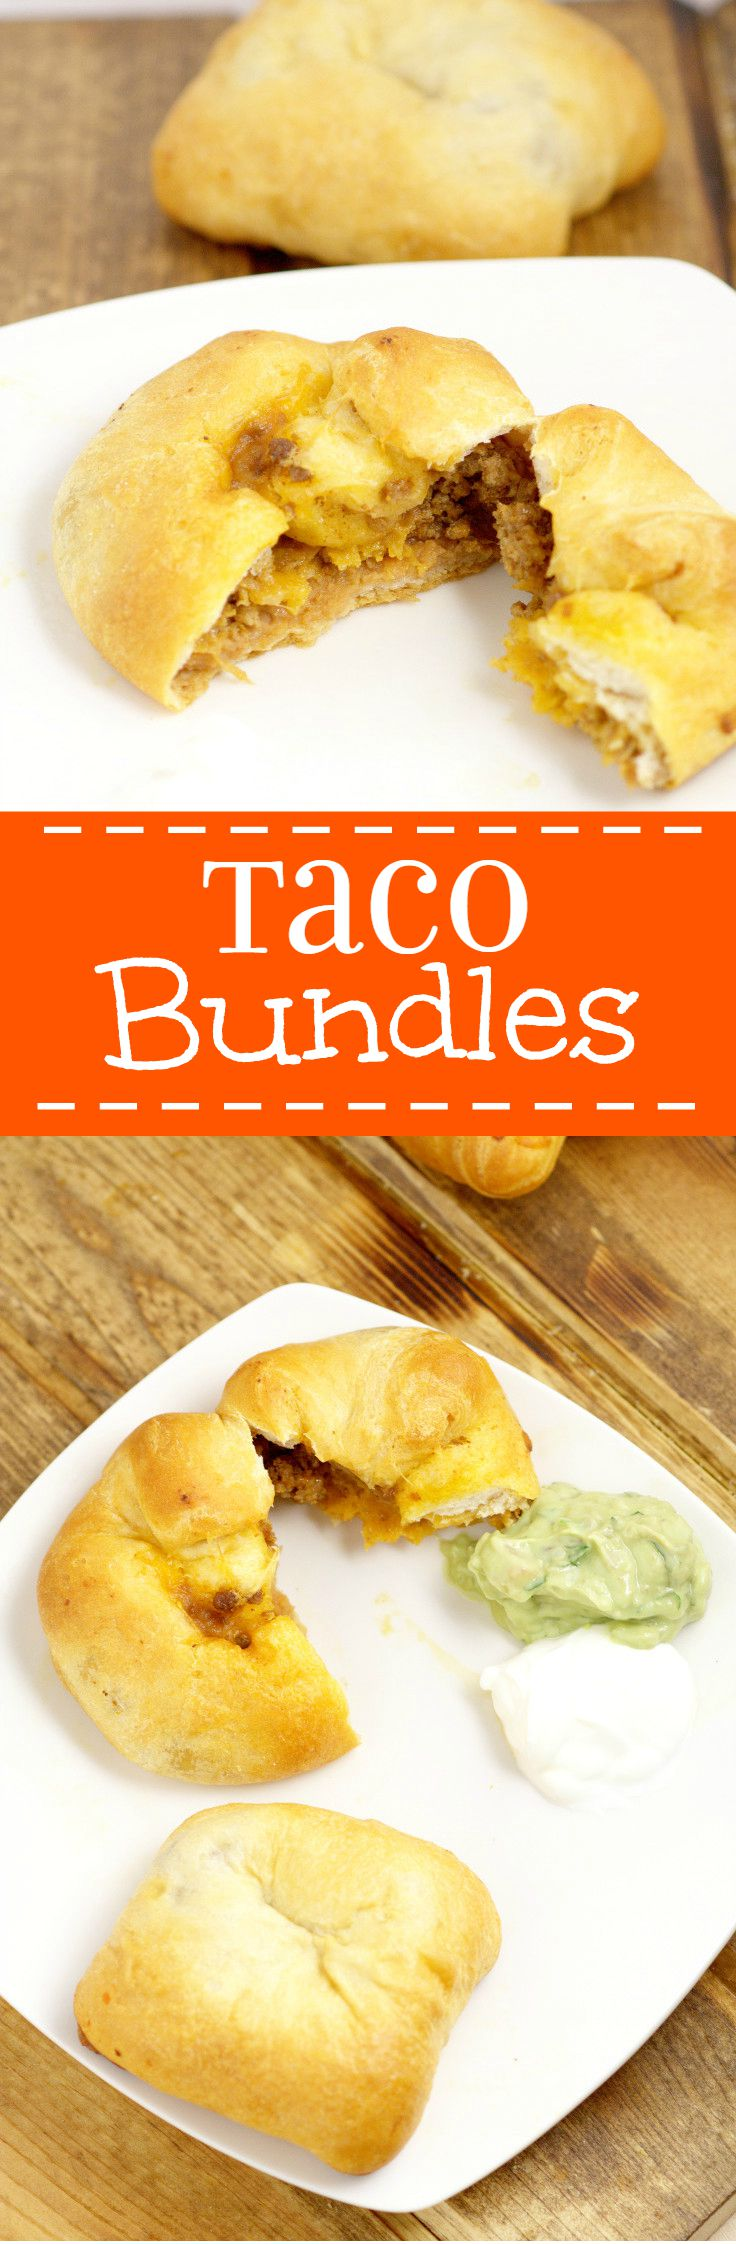 Taco Bundles Recipe - a delicious quick and easy family dinner recipe, using ground beef.  You can even use leftover taco meat.  Tacos on the go!  These are so easy and perfect for busy nights!